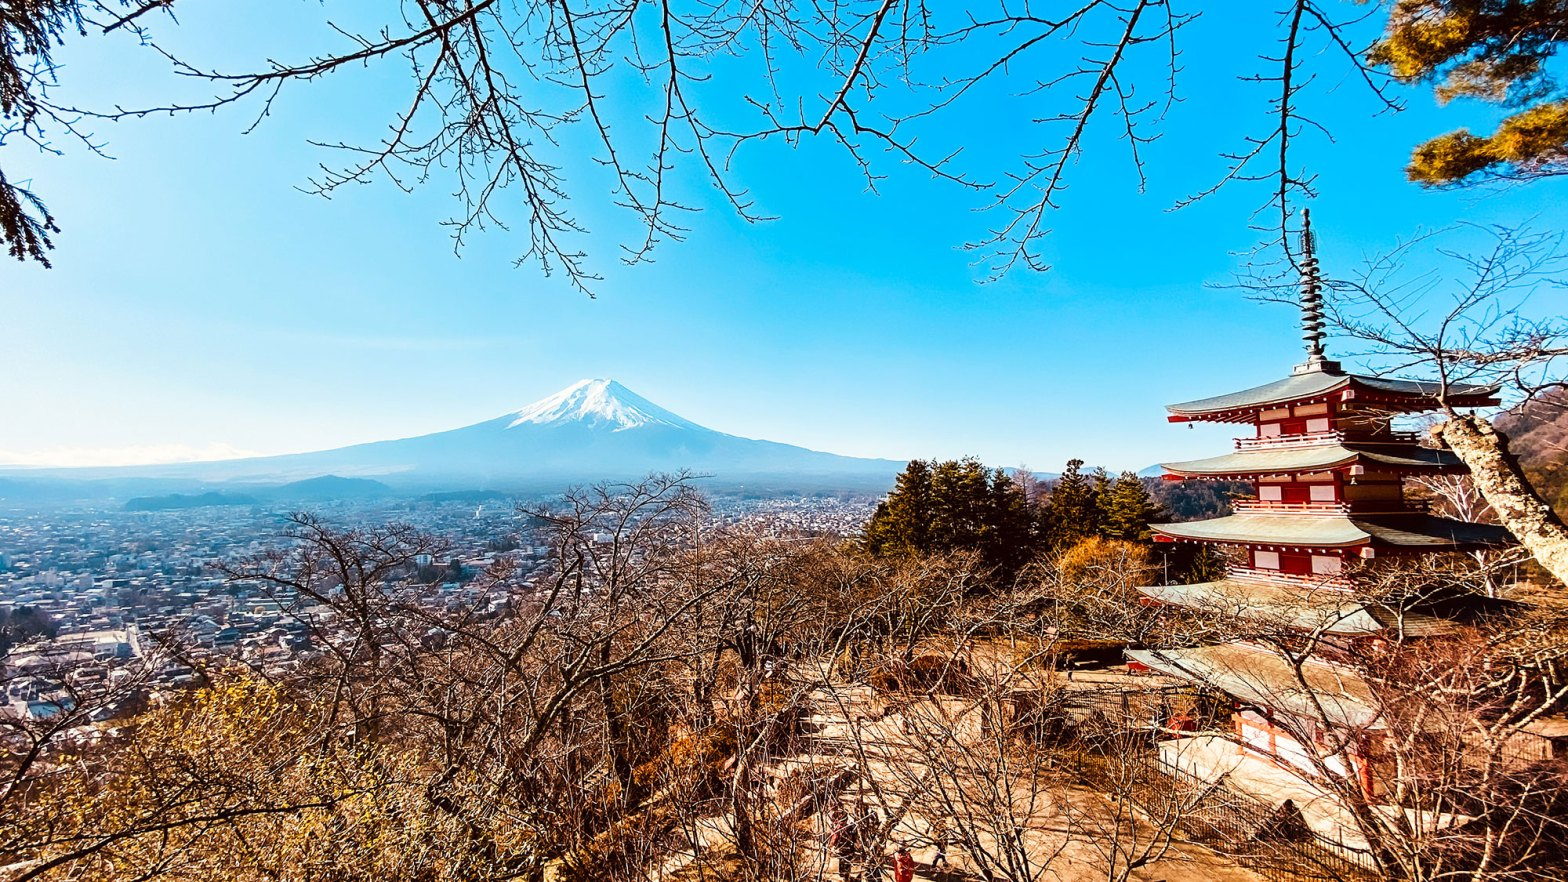 Iconic view of Mt Fuji from Chureito Pagoda